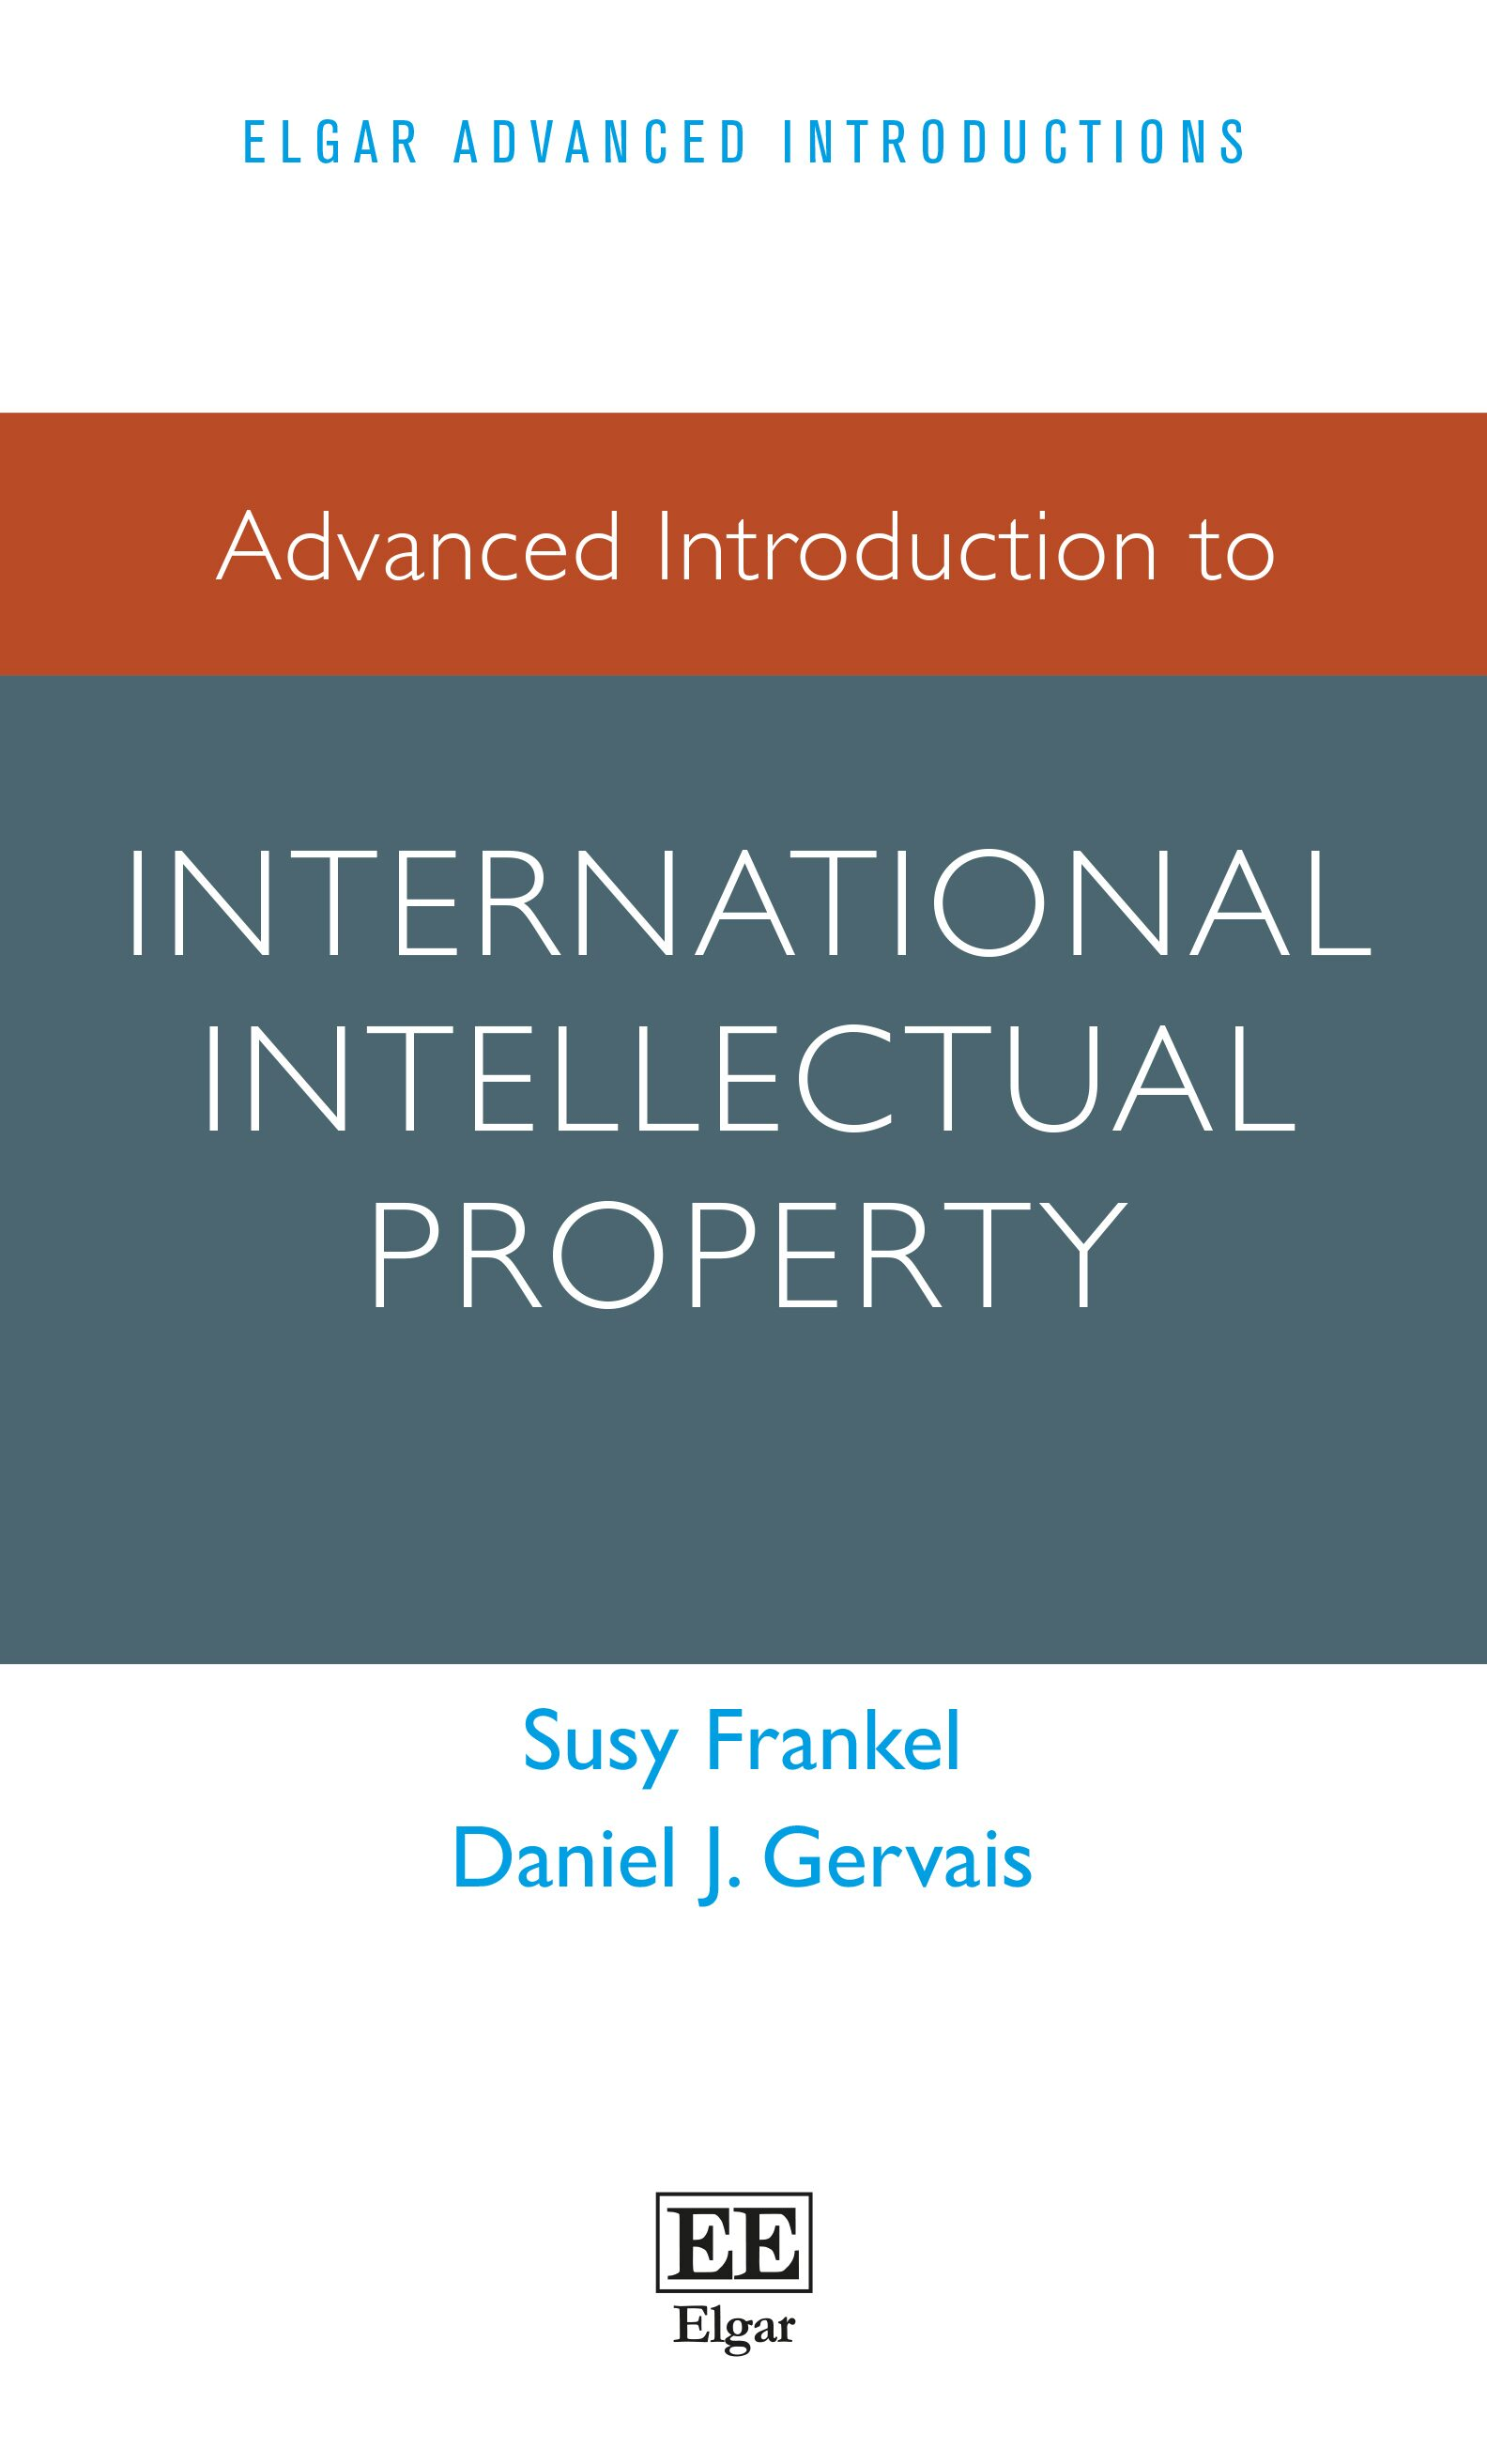 Intellectual property law in Germany - protection, enforcement and dispute resolution